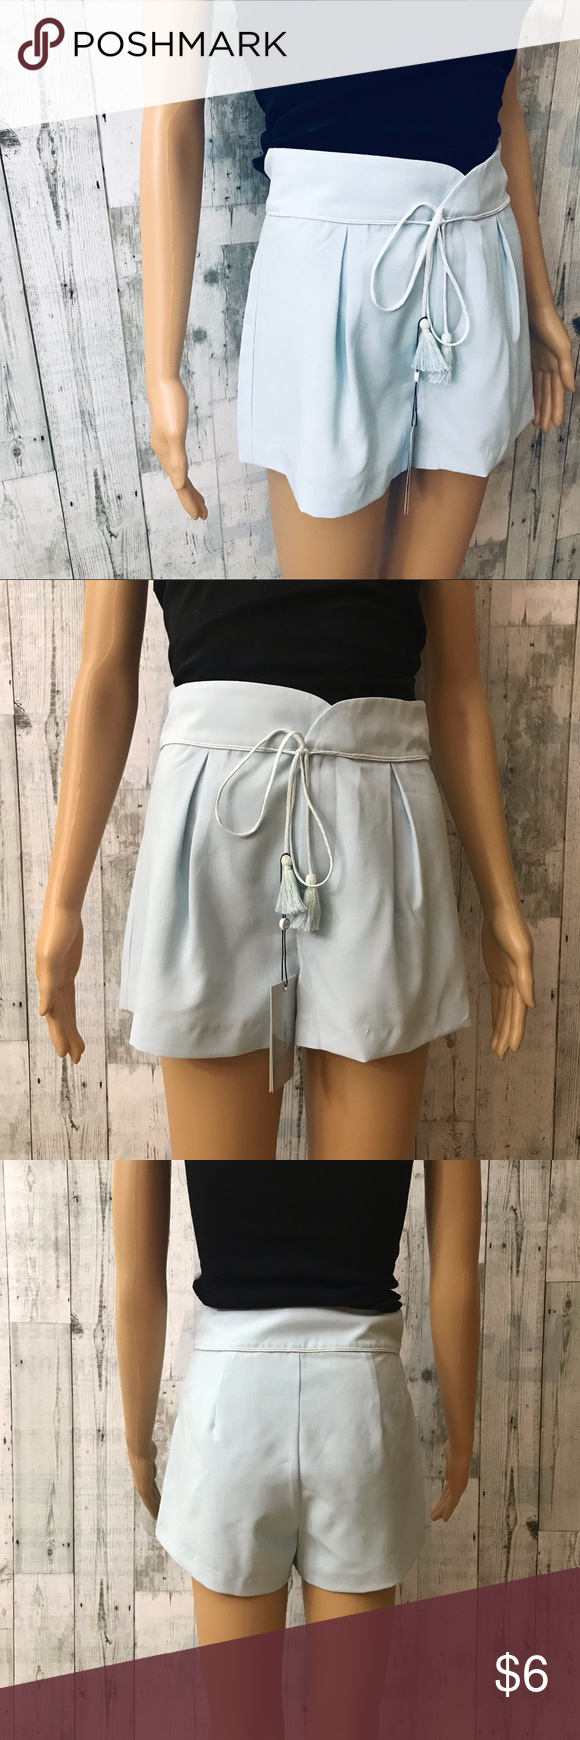 "After Market Light Blue Tassel Shorts Cute light blue shorts with tassels in front, front zip closure, fully lined. Size: S Measurements: 24"" waist, 11.5"" rise, 2"" inseam New with tags 10 After Market Shorts #lightblueshorts"